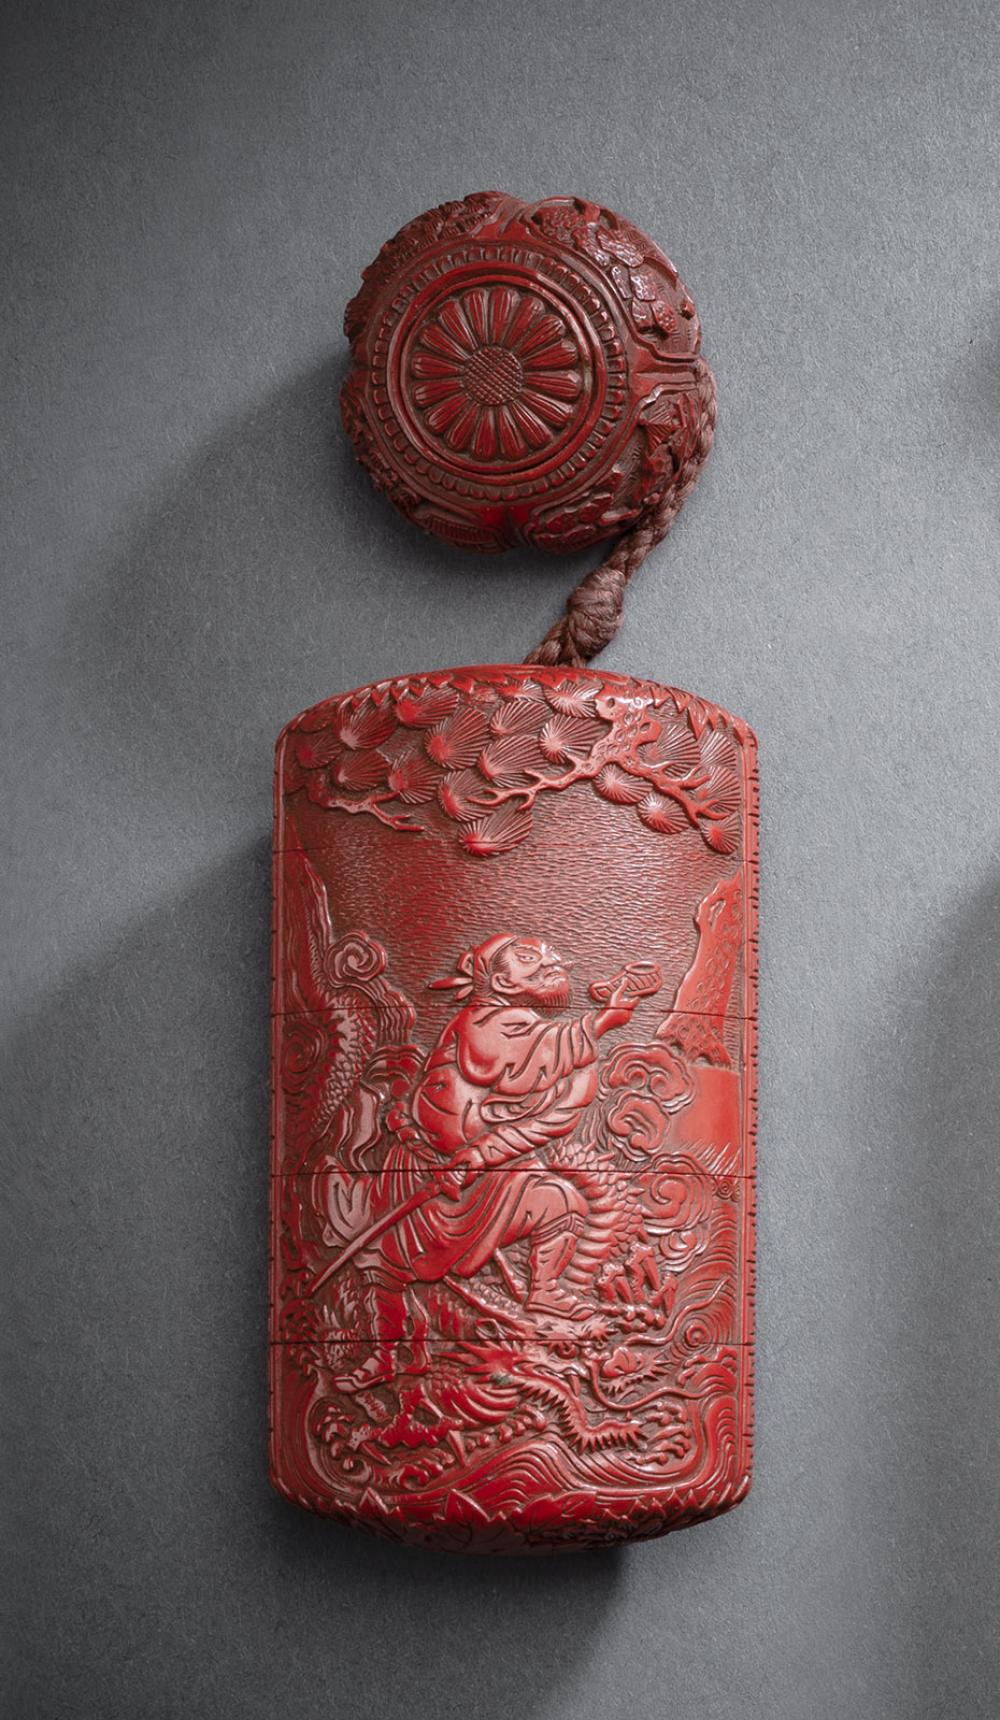 A FOUR-CASE RED LACQUER INRO DEPICTING A SCENE WITH CHÔRYO AND KOSEKIKO AND A MANJU DECORATED WITH LANDSCAPE SCENES